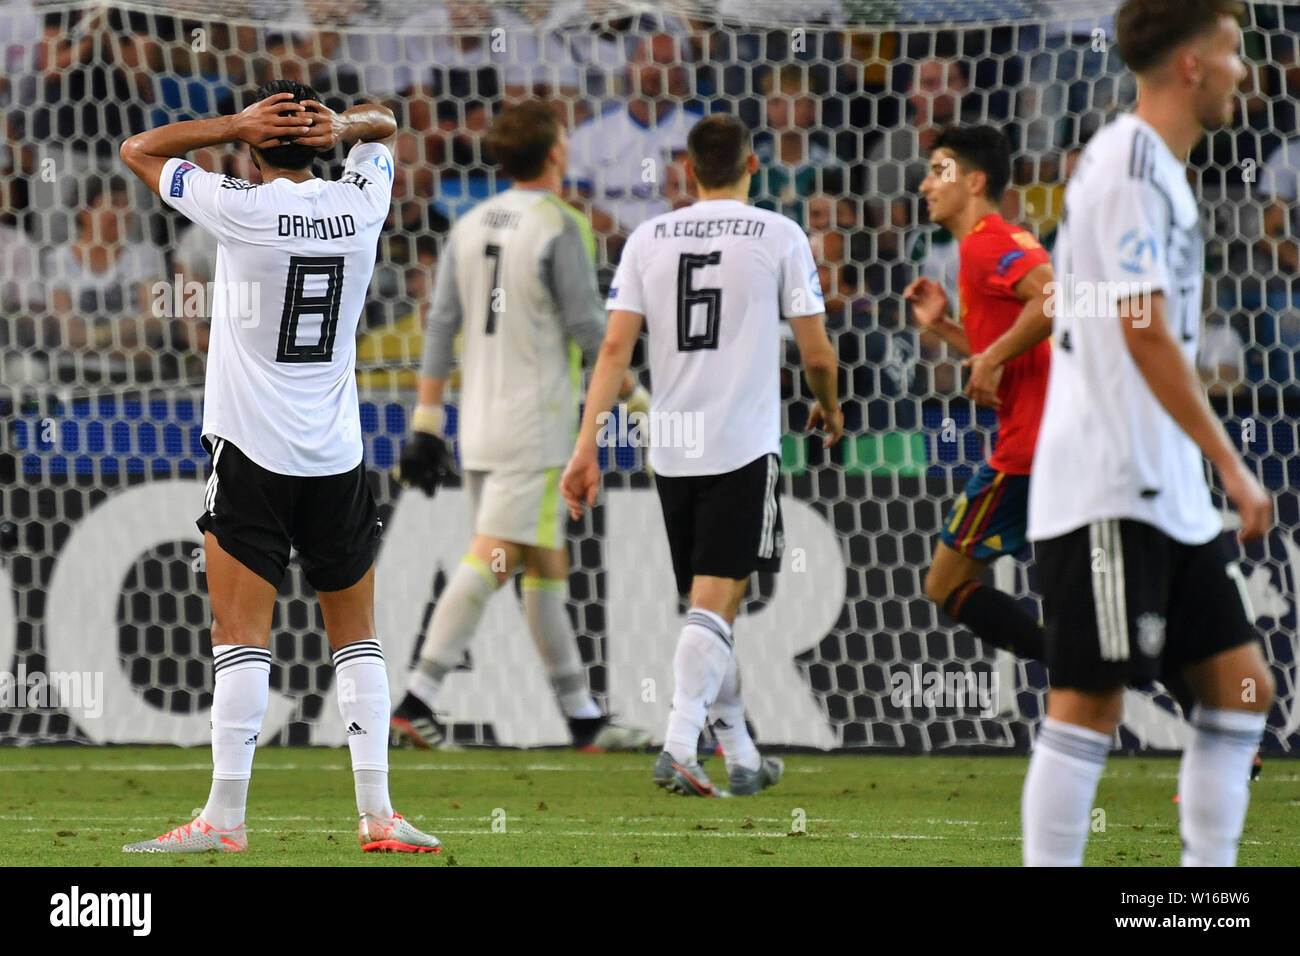 Udine, Italien. 30th June, 2019. Mahmoud DAHOUD (GER, left) Disappointment, frustrated, disappointed, frustrated, dejected, after Ggeentor to 2-0, action. Spain (ESP) - Germany (GER) 2-1, at 30.06.2019 Stadio Friuli Udine. Football U-21, FINALE UEFA Under21 European Championship in Italy/SanMarino from 16.-30.06.2019. | Usage worldwide Credit: dpa/Alamy Live News - Stock Image